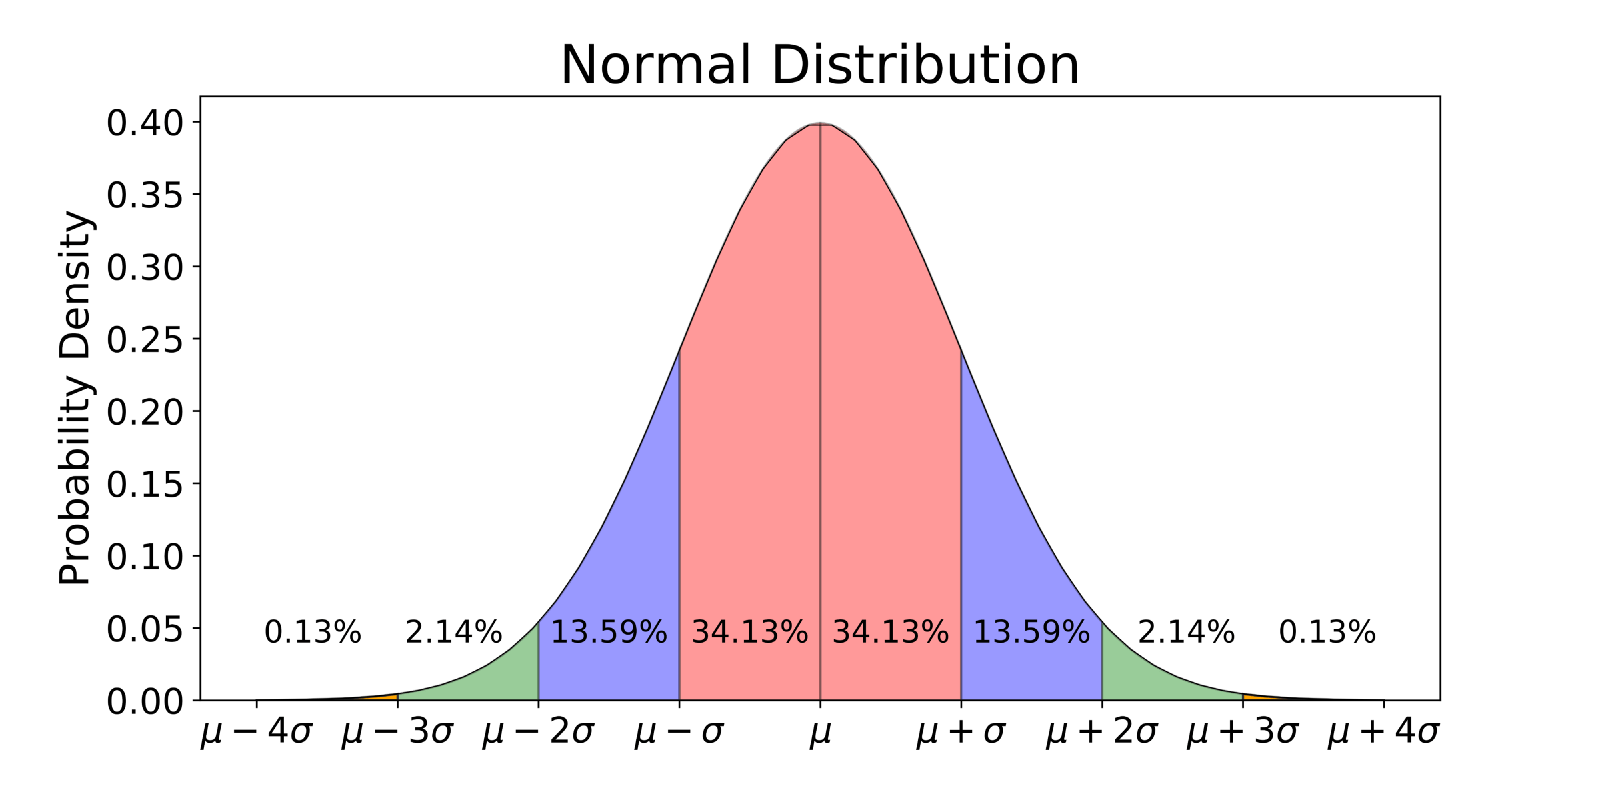 Python Imshow Scale For Normal Distribution 2d Numpy Array